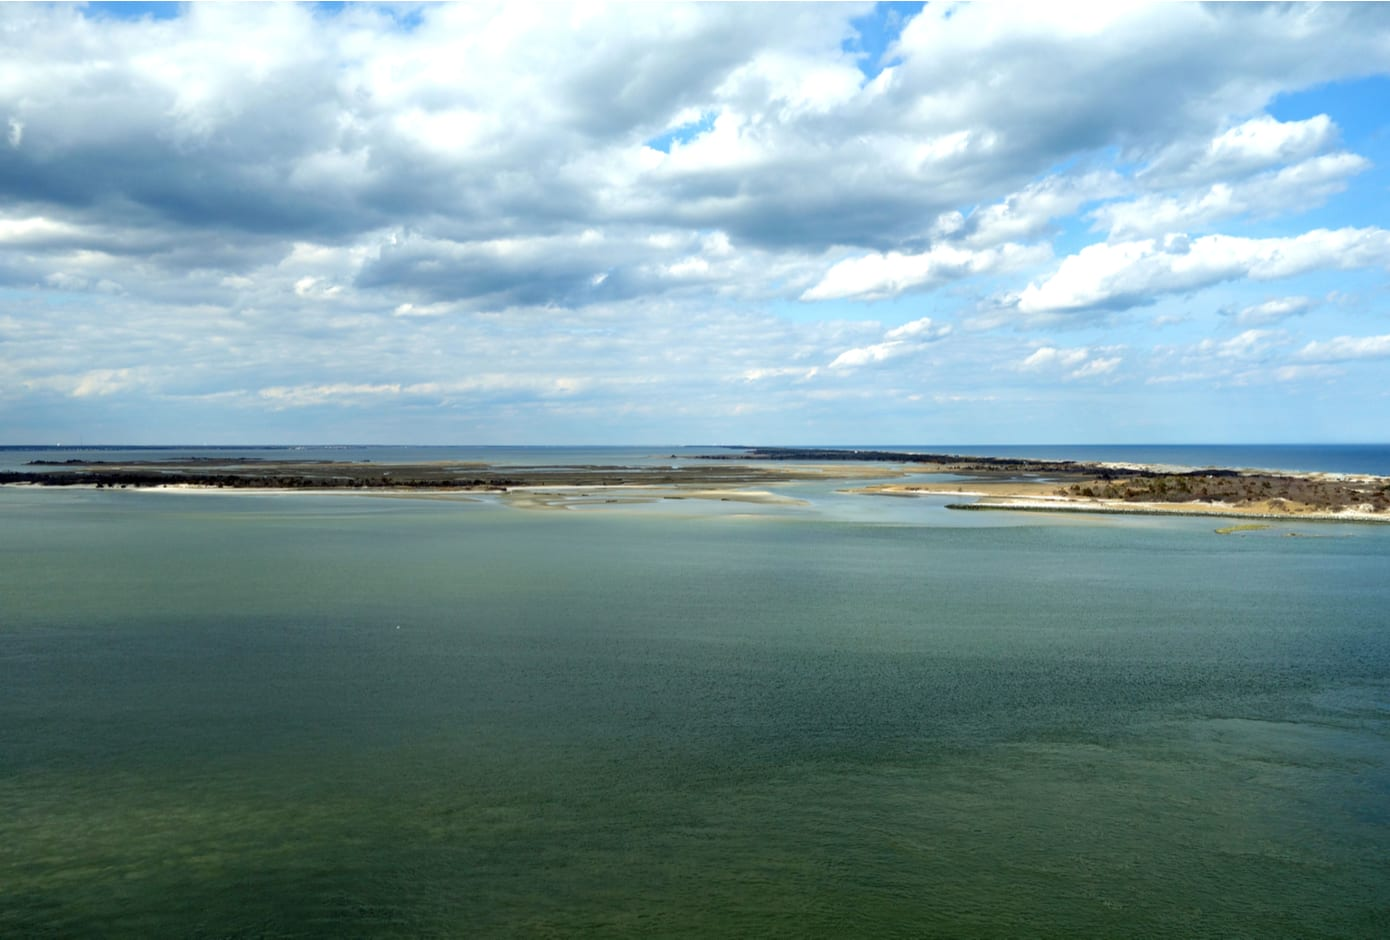 View of the Barnegat State Park located on Long Beach Island, New Jersey.